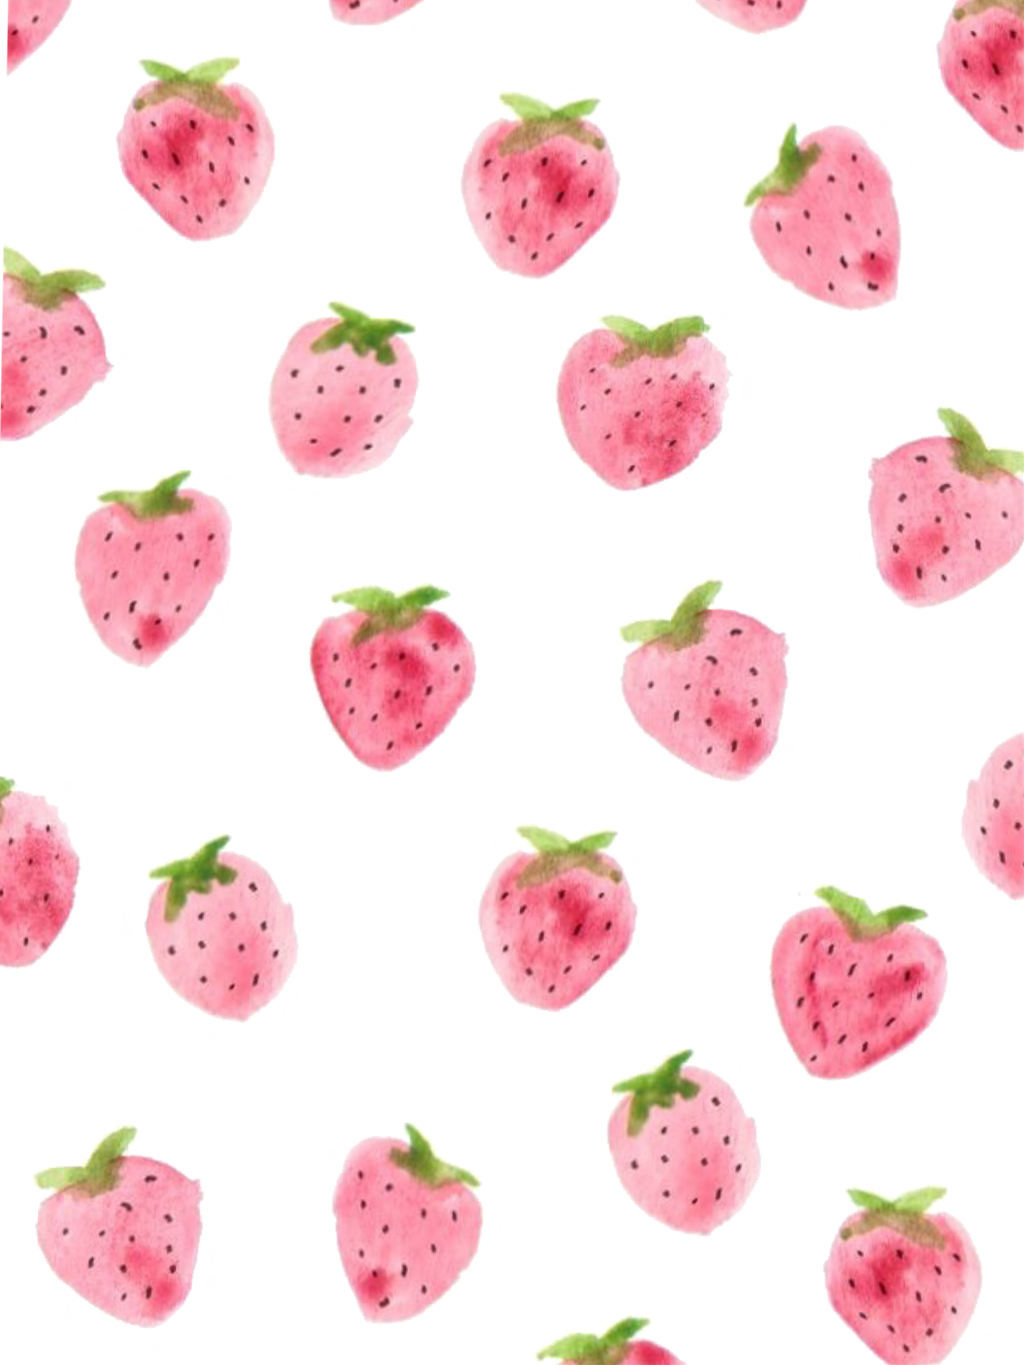 Fruity fruit freetoedit report. Strawberries clipart pink strawberry